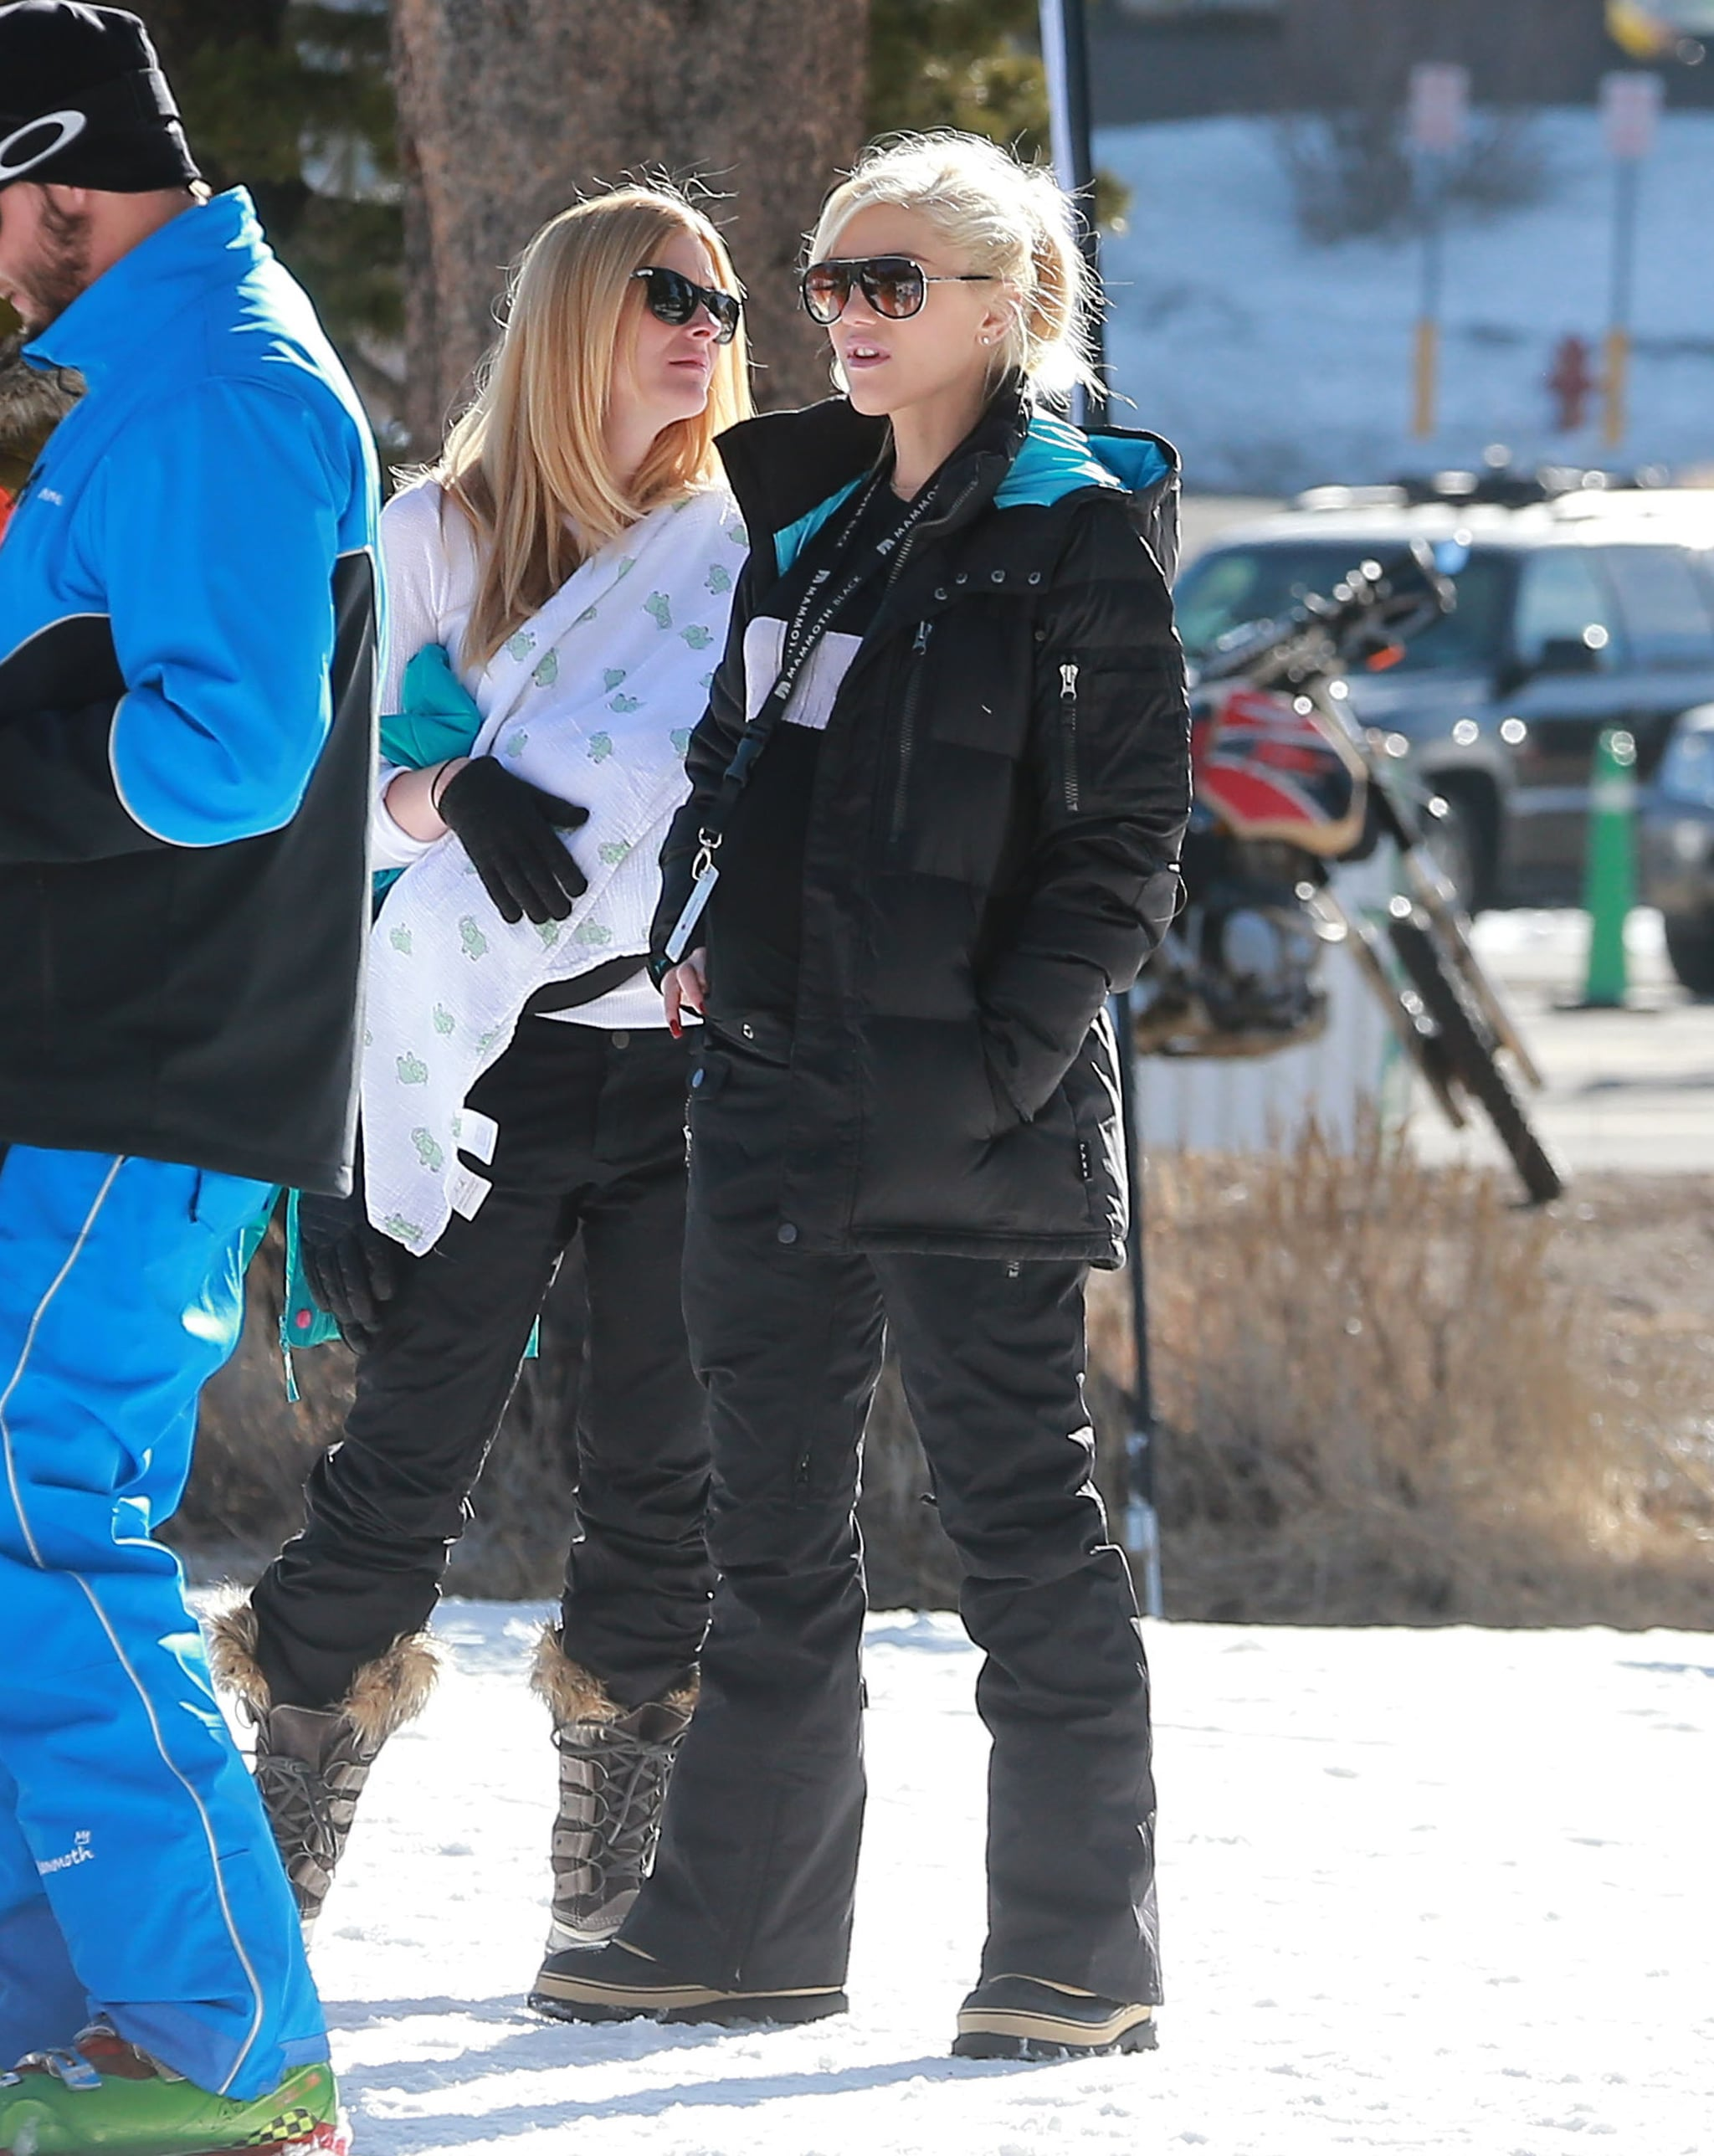 Gwen watched as her sons took ski lessons.